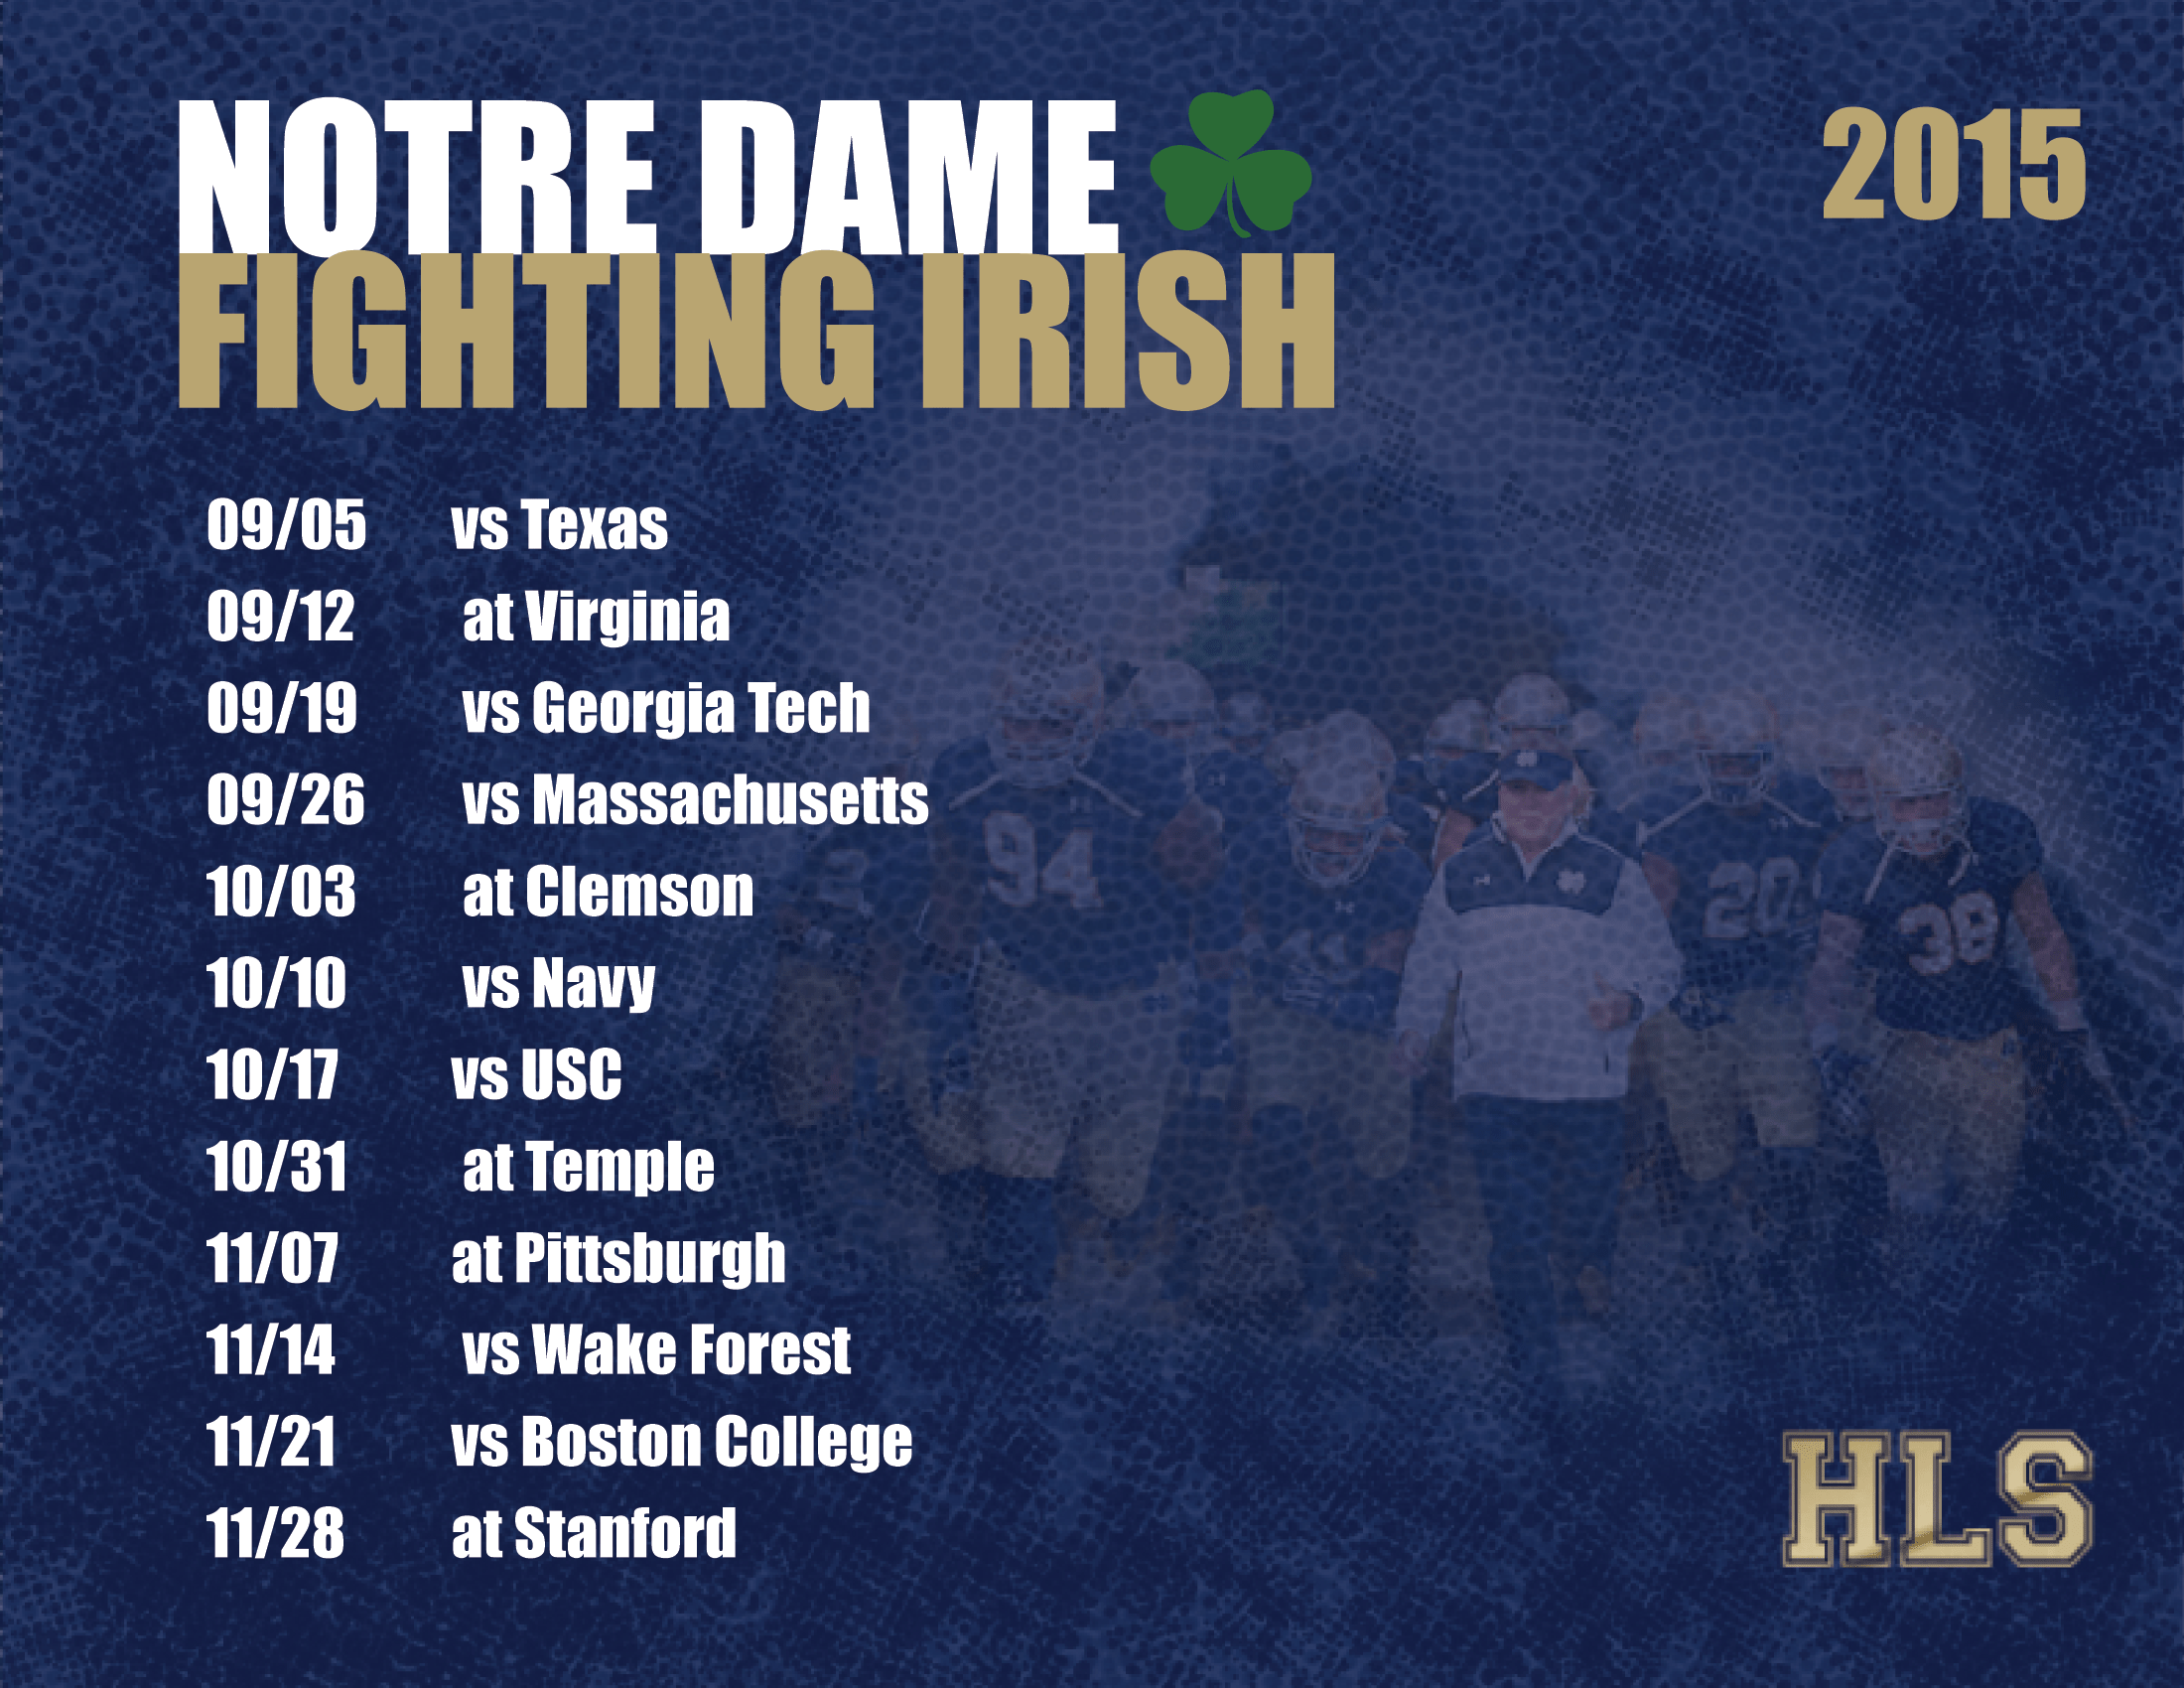 notre dame football schedule - photo #22